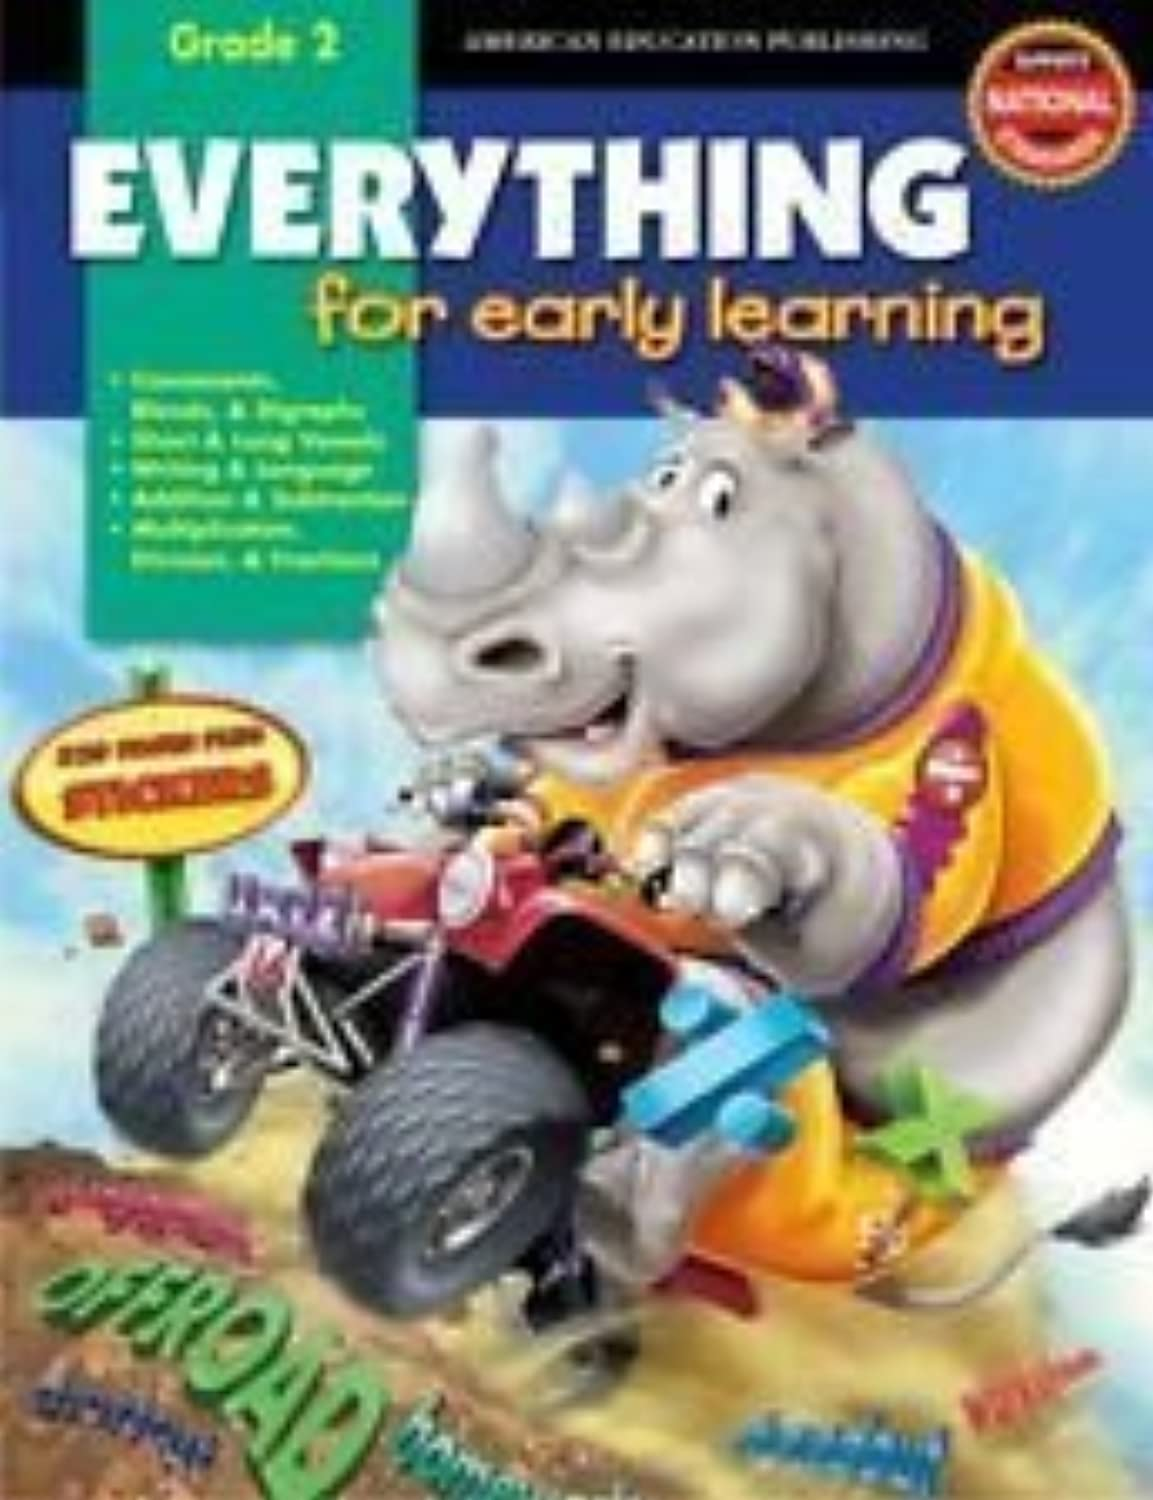 Everything for Early Learning (Grade 2) 320 Pages Plus Stickers by School Specialty Publishing